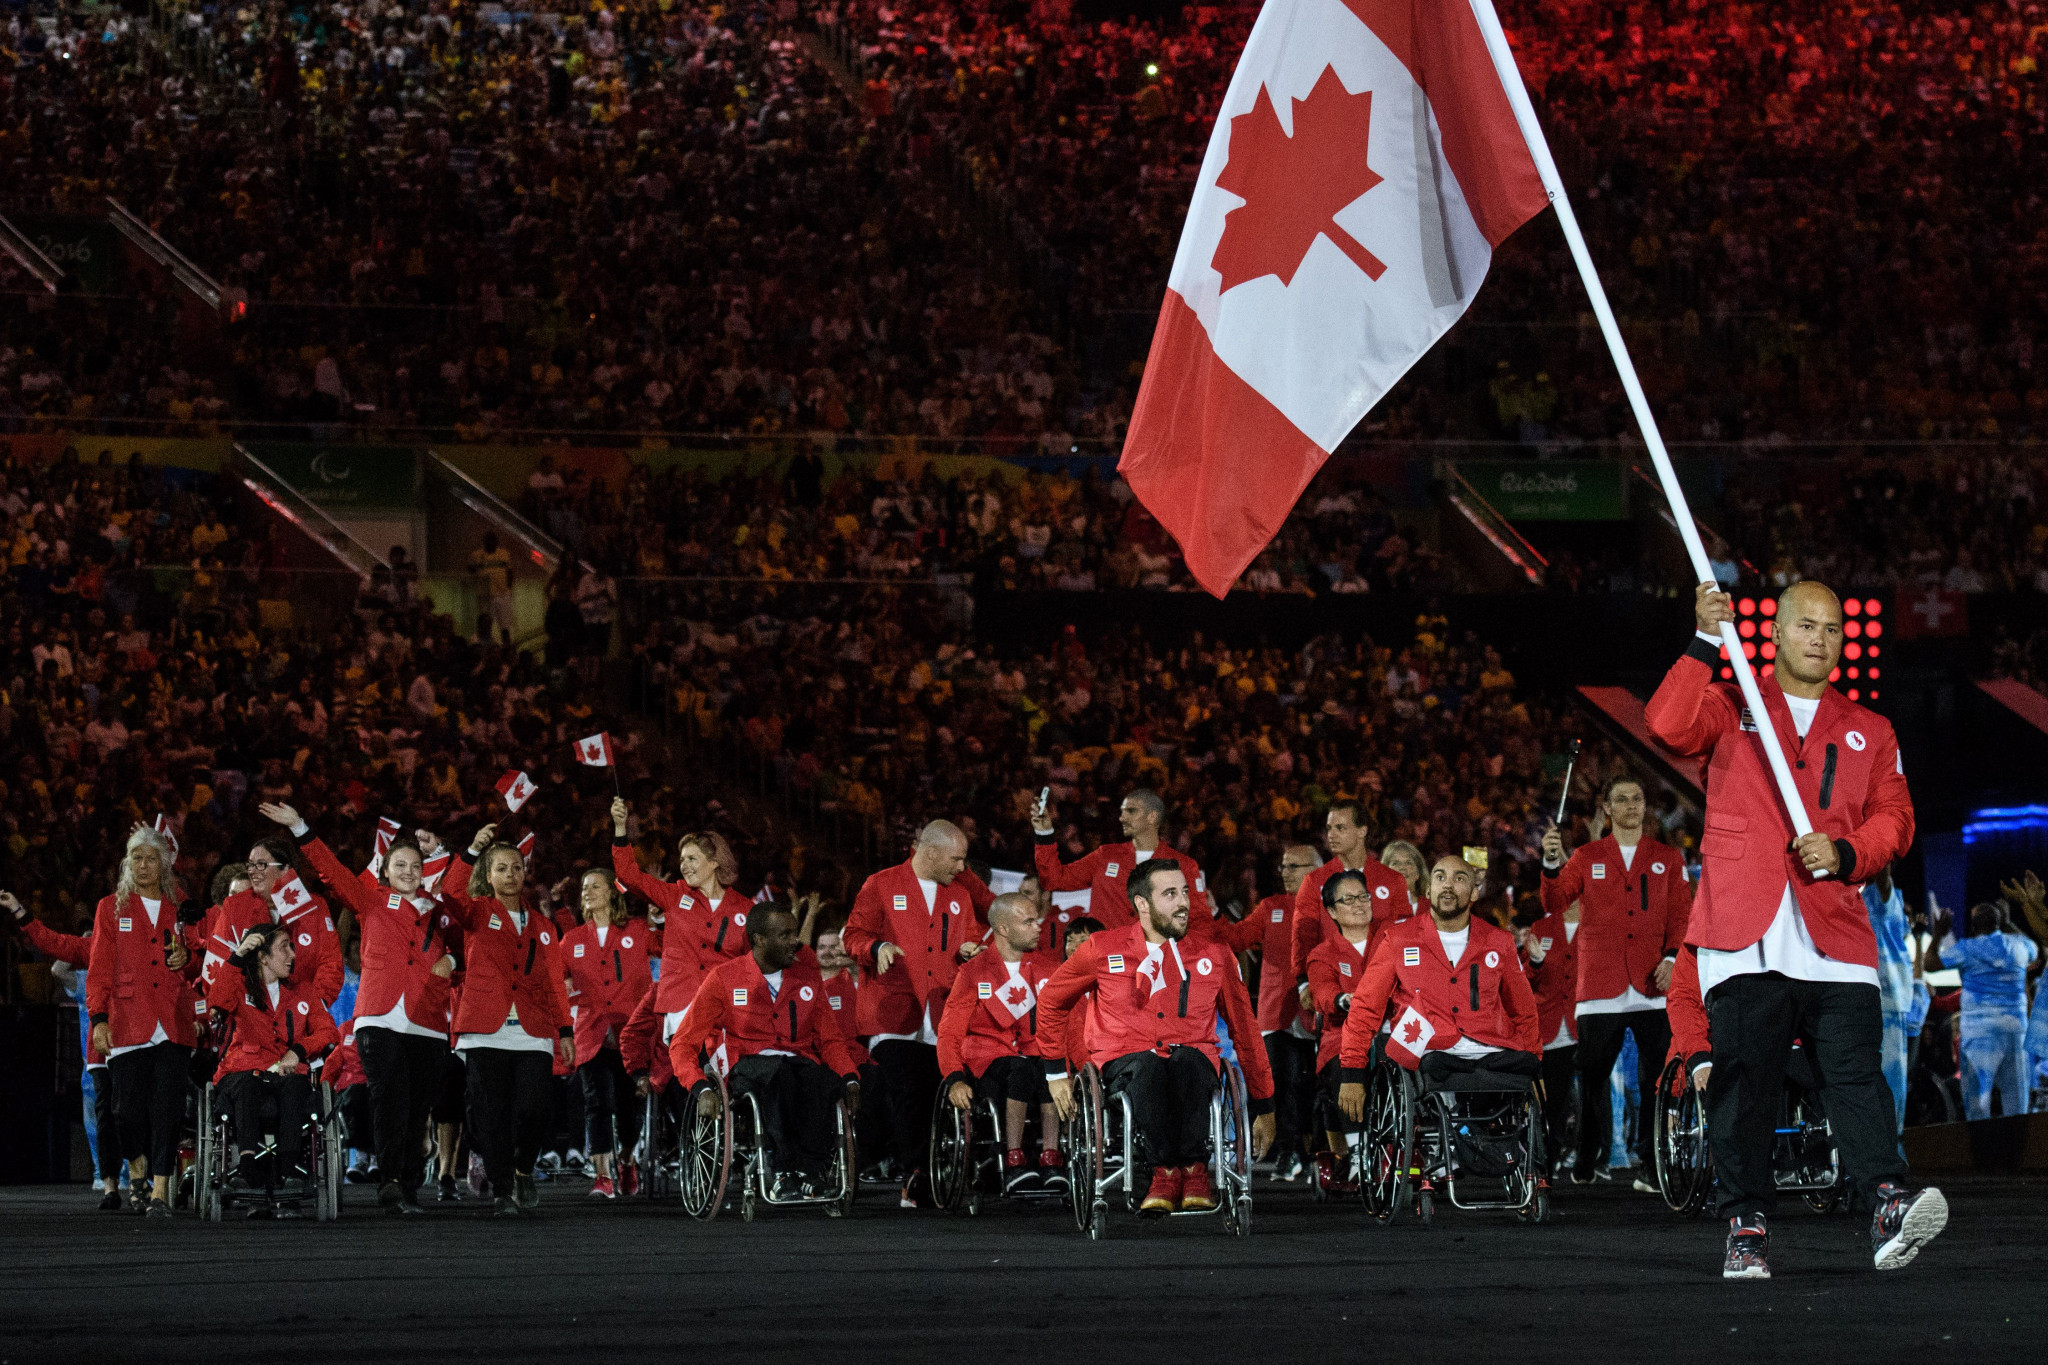 Stephanie Dixon will lead the Canadian team at the 2020 Paralympic Games in Tokyo and at the Lima 2019 Parapan American Games ©Getty Images